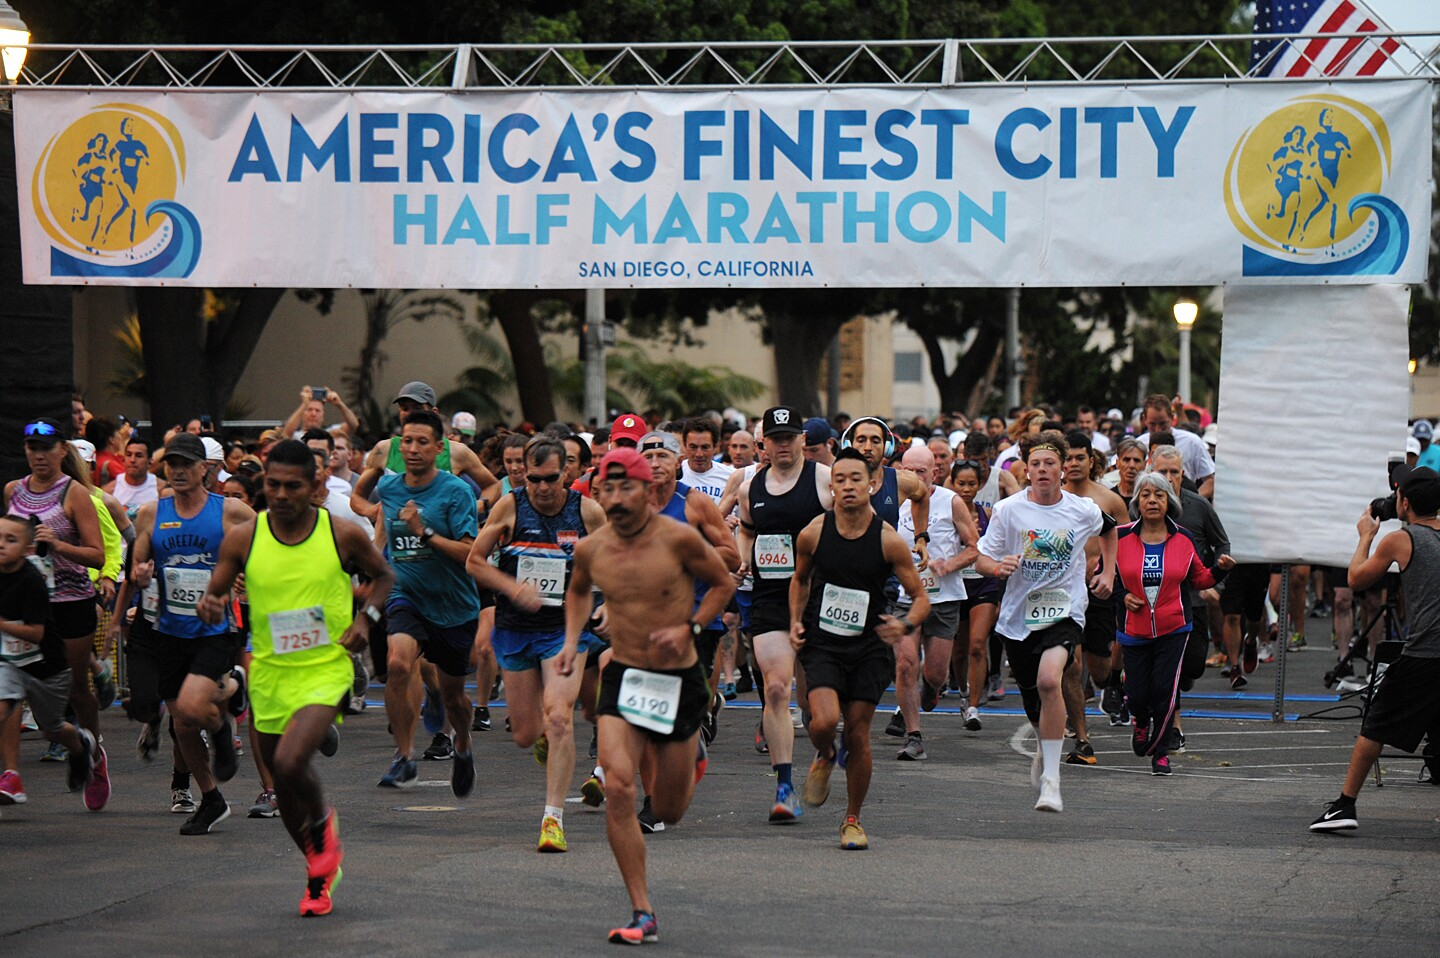 Runners raced to the finish line through the scenic course of America's Finest City Half Marathon & 5K on Sunday, August 18, 2019.